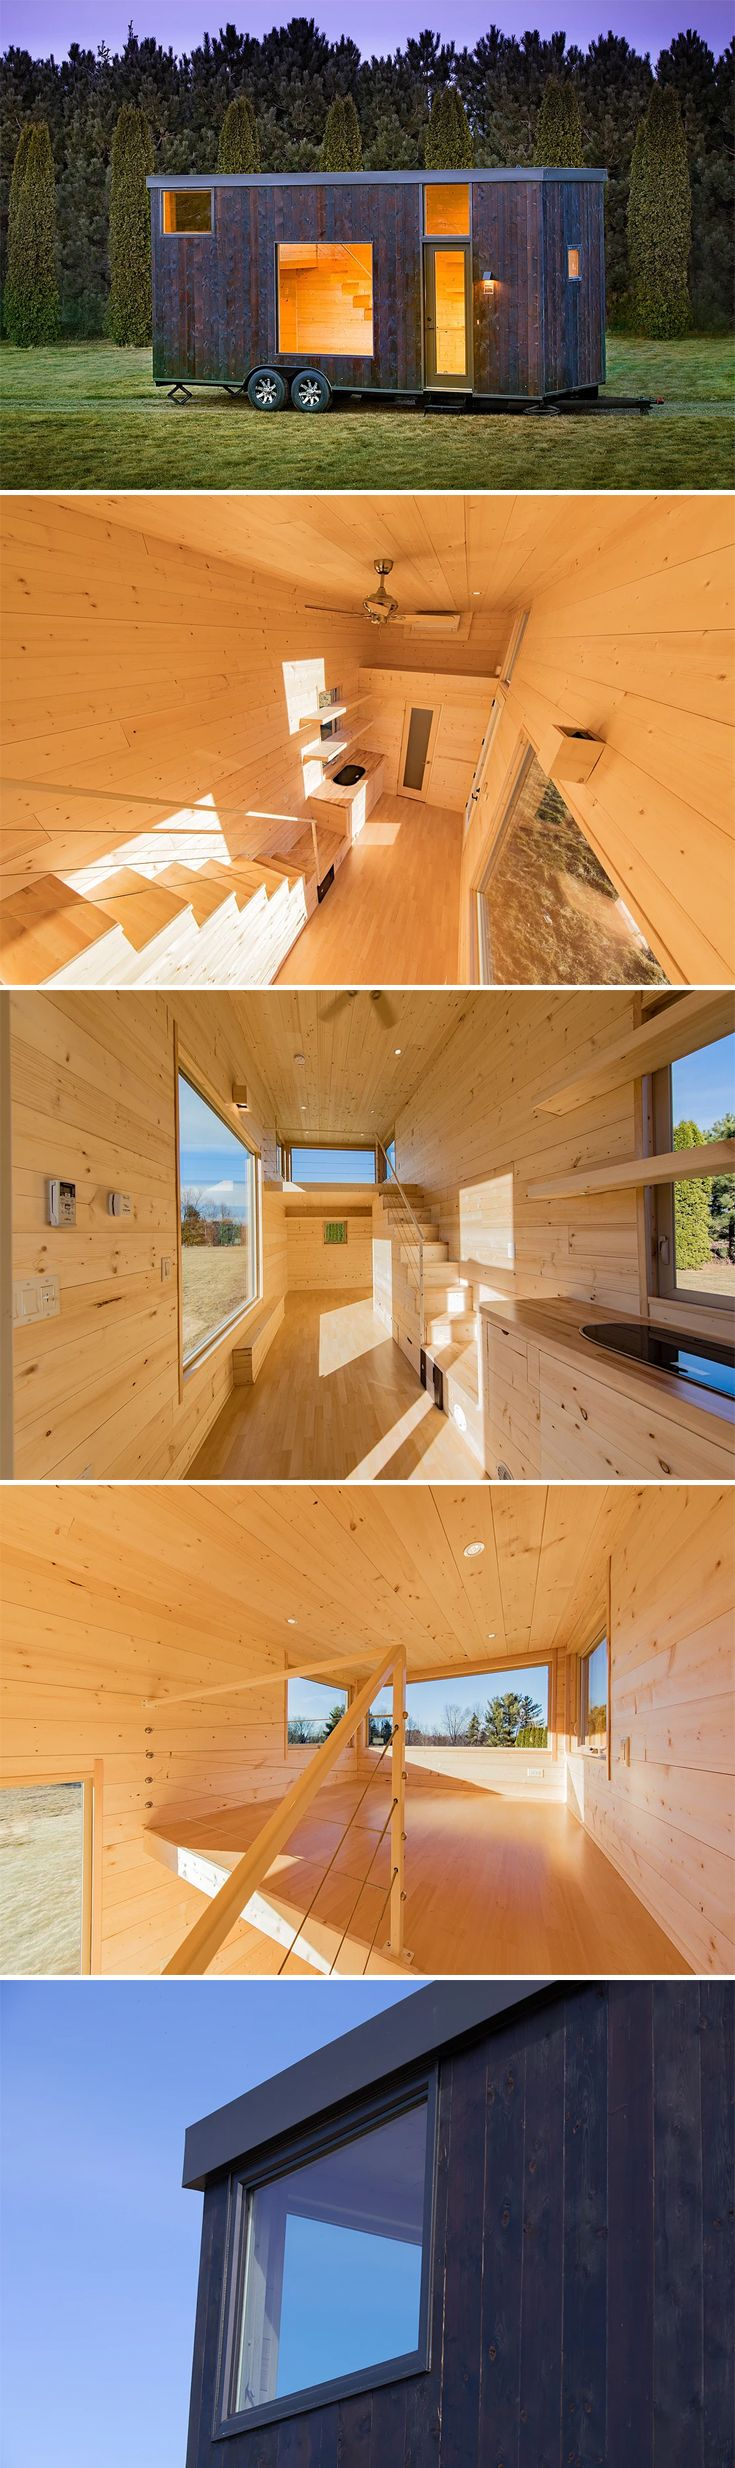 Escape One by Escape Traveler | Tiny houses, Pine and Japanese on dream house japan, building japan, narrow house designs in japan, small house japan, micro house japan, glass house japan, apartment japan, travel japan, tiny houses new york, photography japan, garden japan, food japan, dining room japan, money japan, office japan, japanese house in japan, modern japan, fishing japan, tree japan, swimming pool japan,